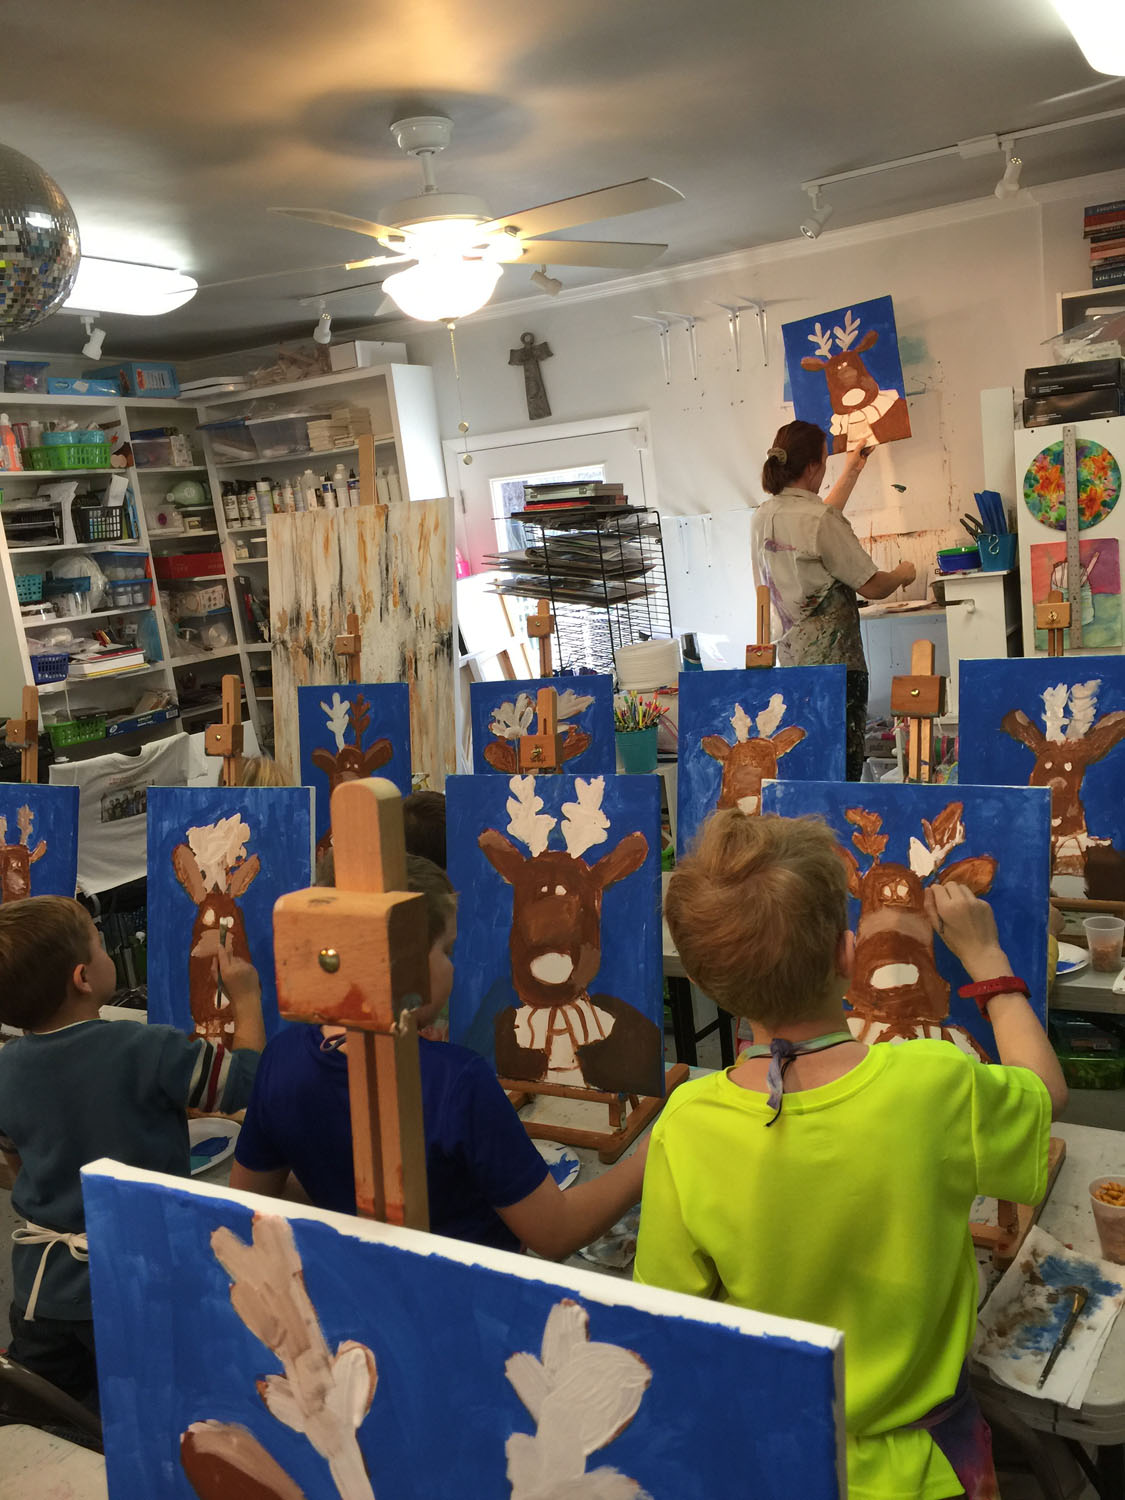 kids-art-parties-classes-and-camps-in-greensboro-nc-with-artist-tracey-j-marshallIMG_8060.jpg